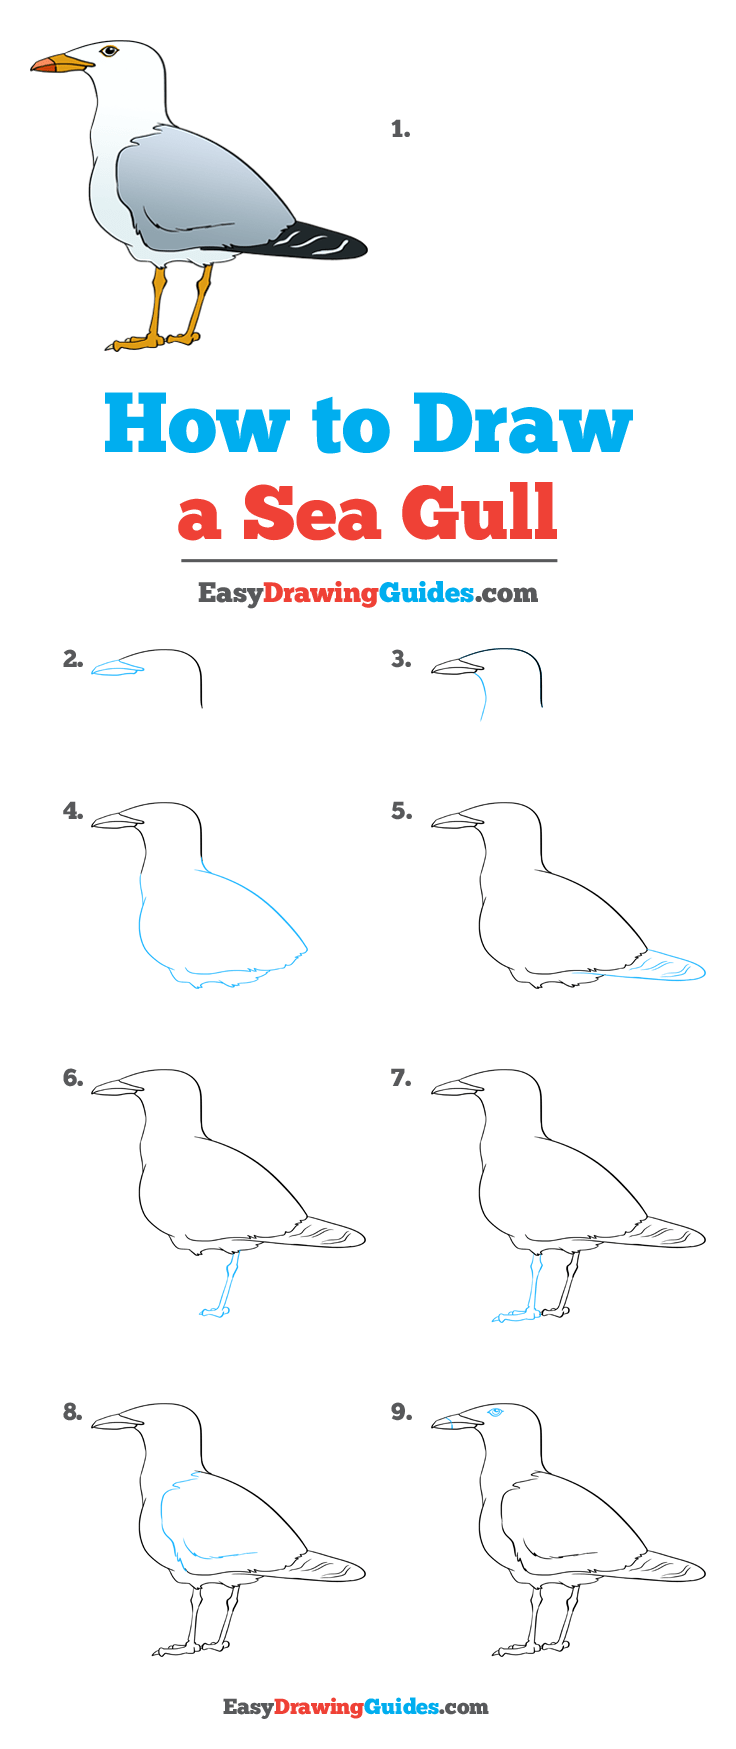 How to Draw a Seagull Step by Step Tutorial Image